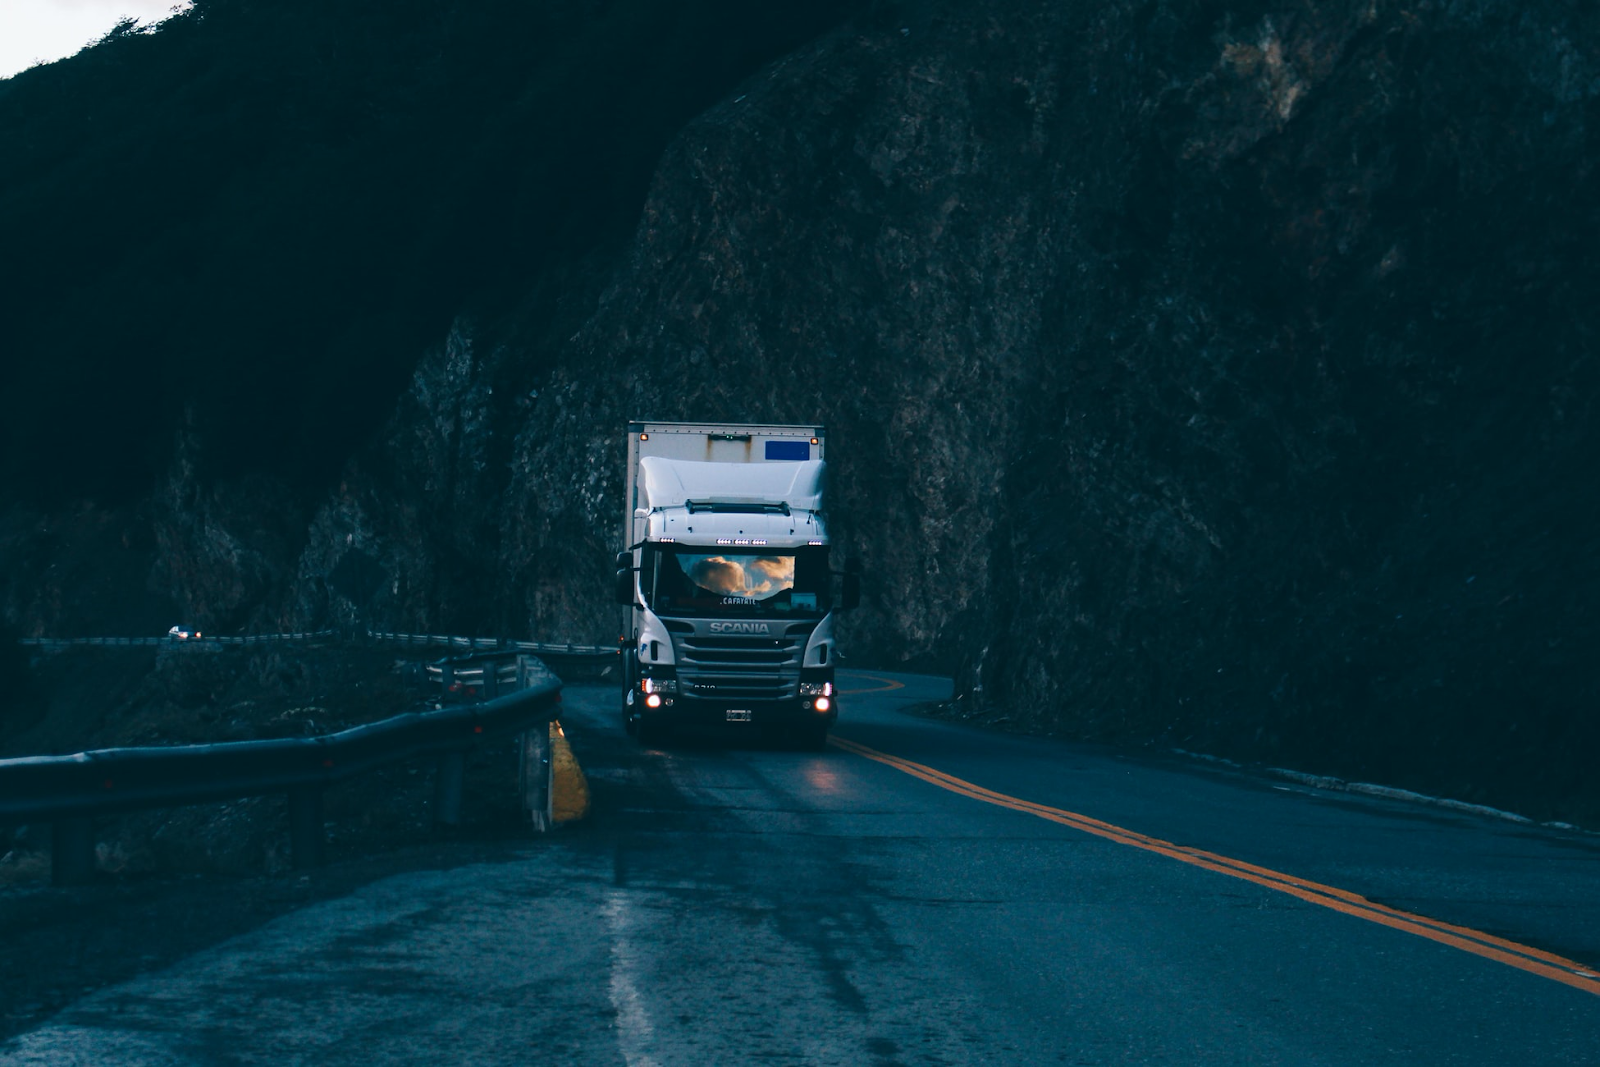 Headlights & RV Lighting: How To Keep The Dark Away After The Sun Sets